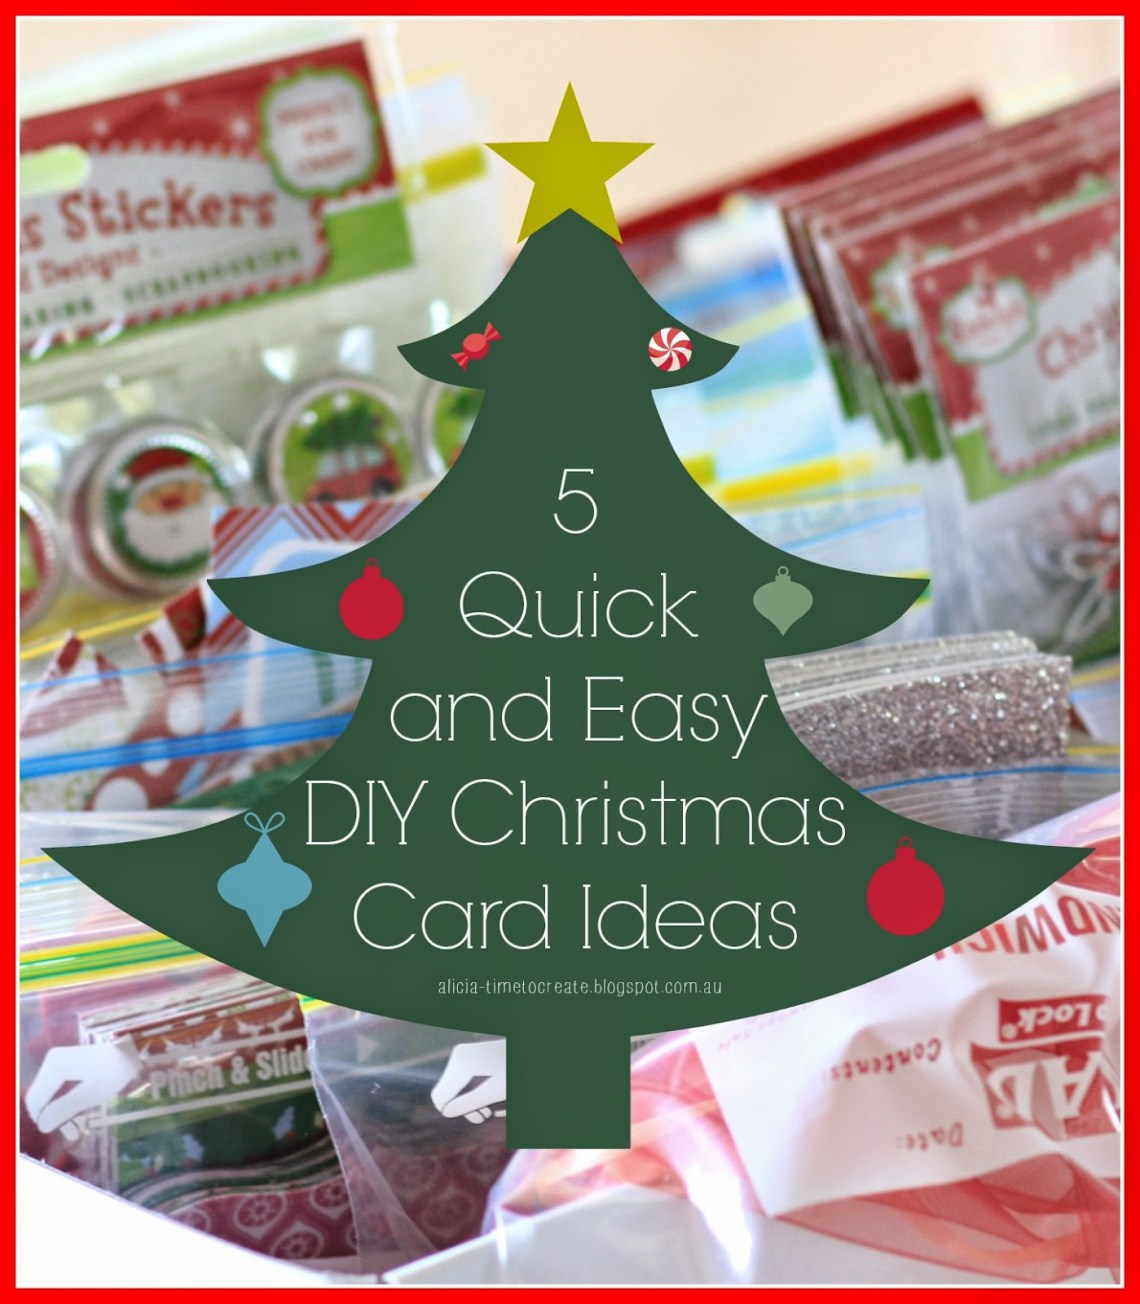 5 Quick and Easy DIY Christmas Card Ideas - Paper Craft Secrets